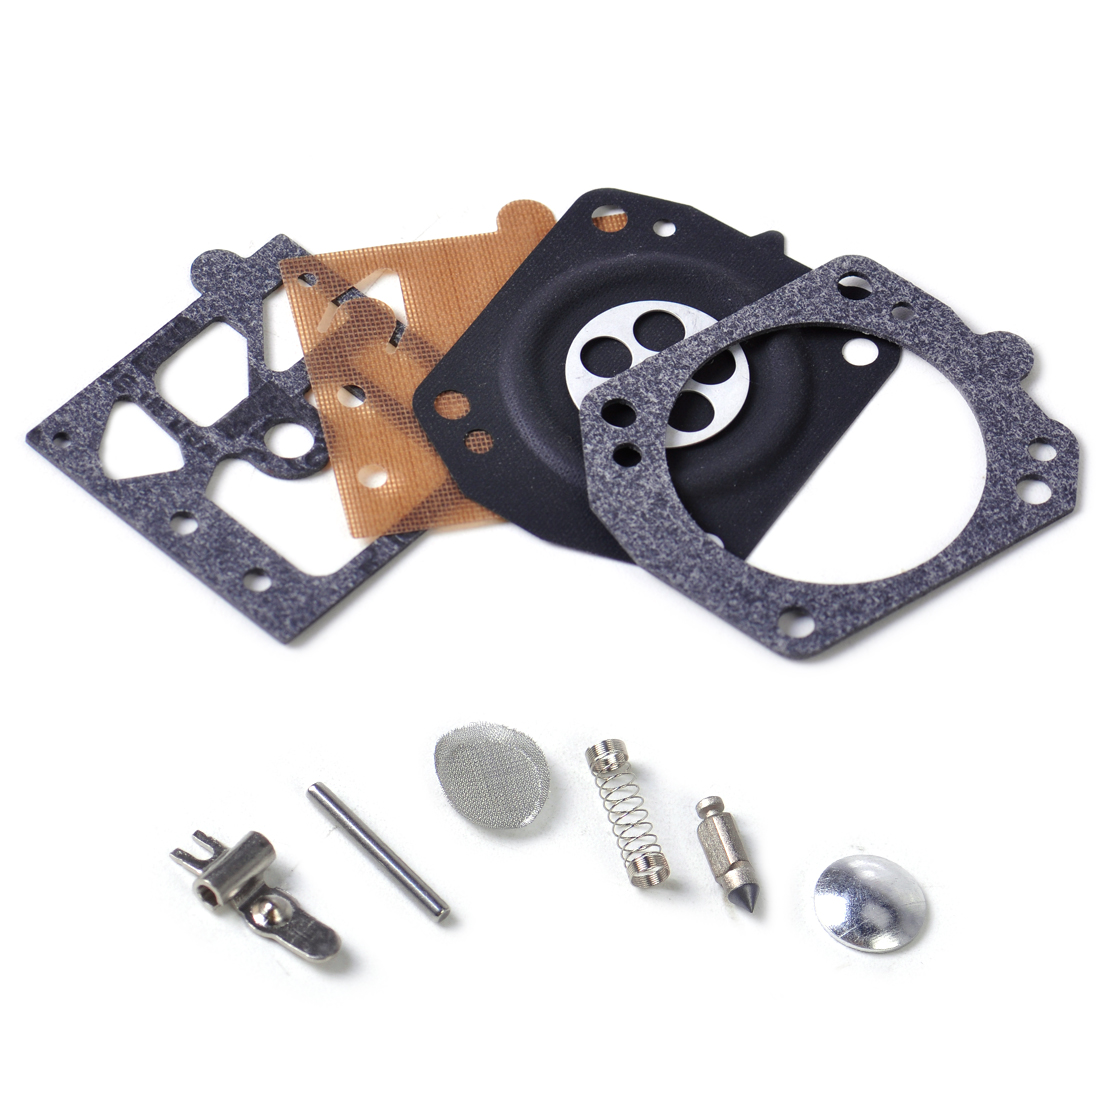 LETAOSK Carburetor Carb Repair Replace Diaphragm Gasket Kit For Walbro K10-HD For STIHL 027 029 039 MS270 MS290 MS390